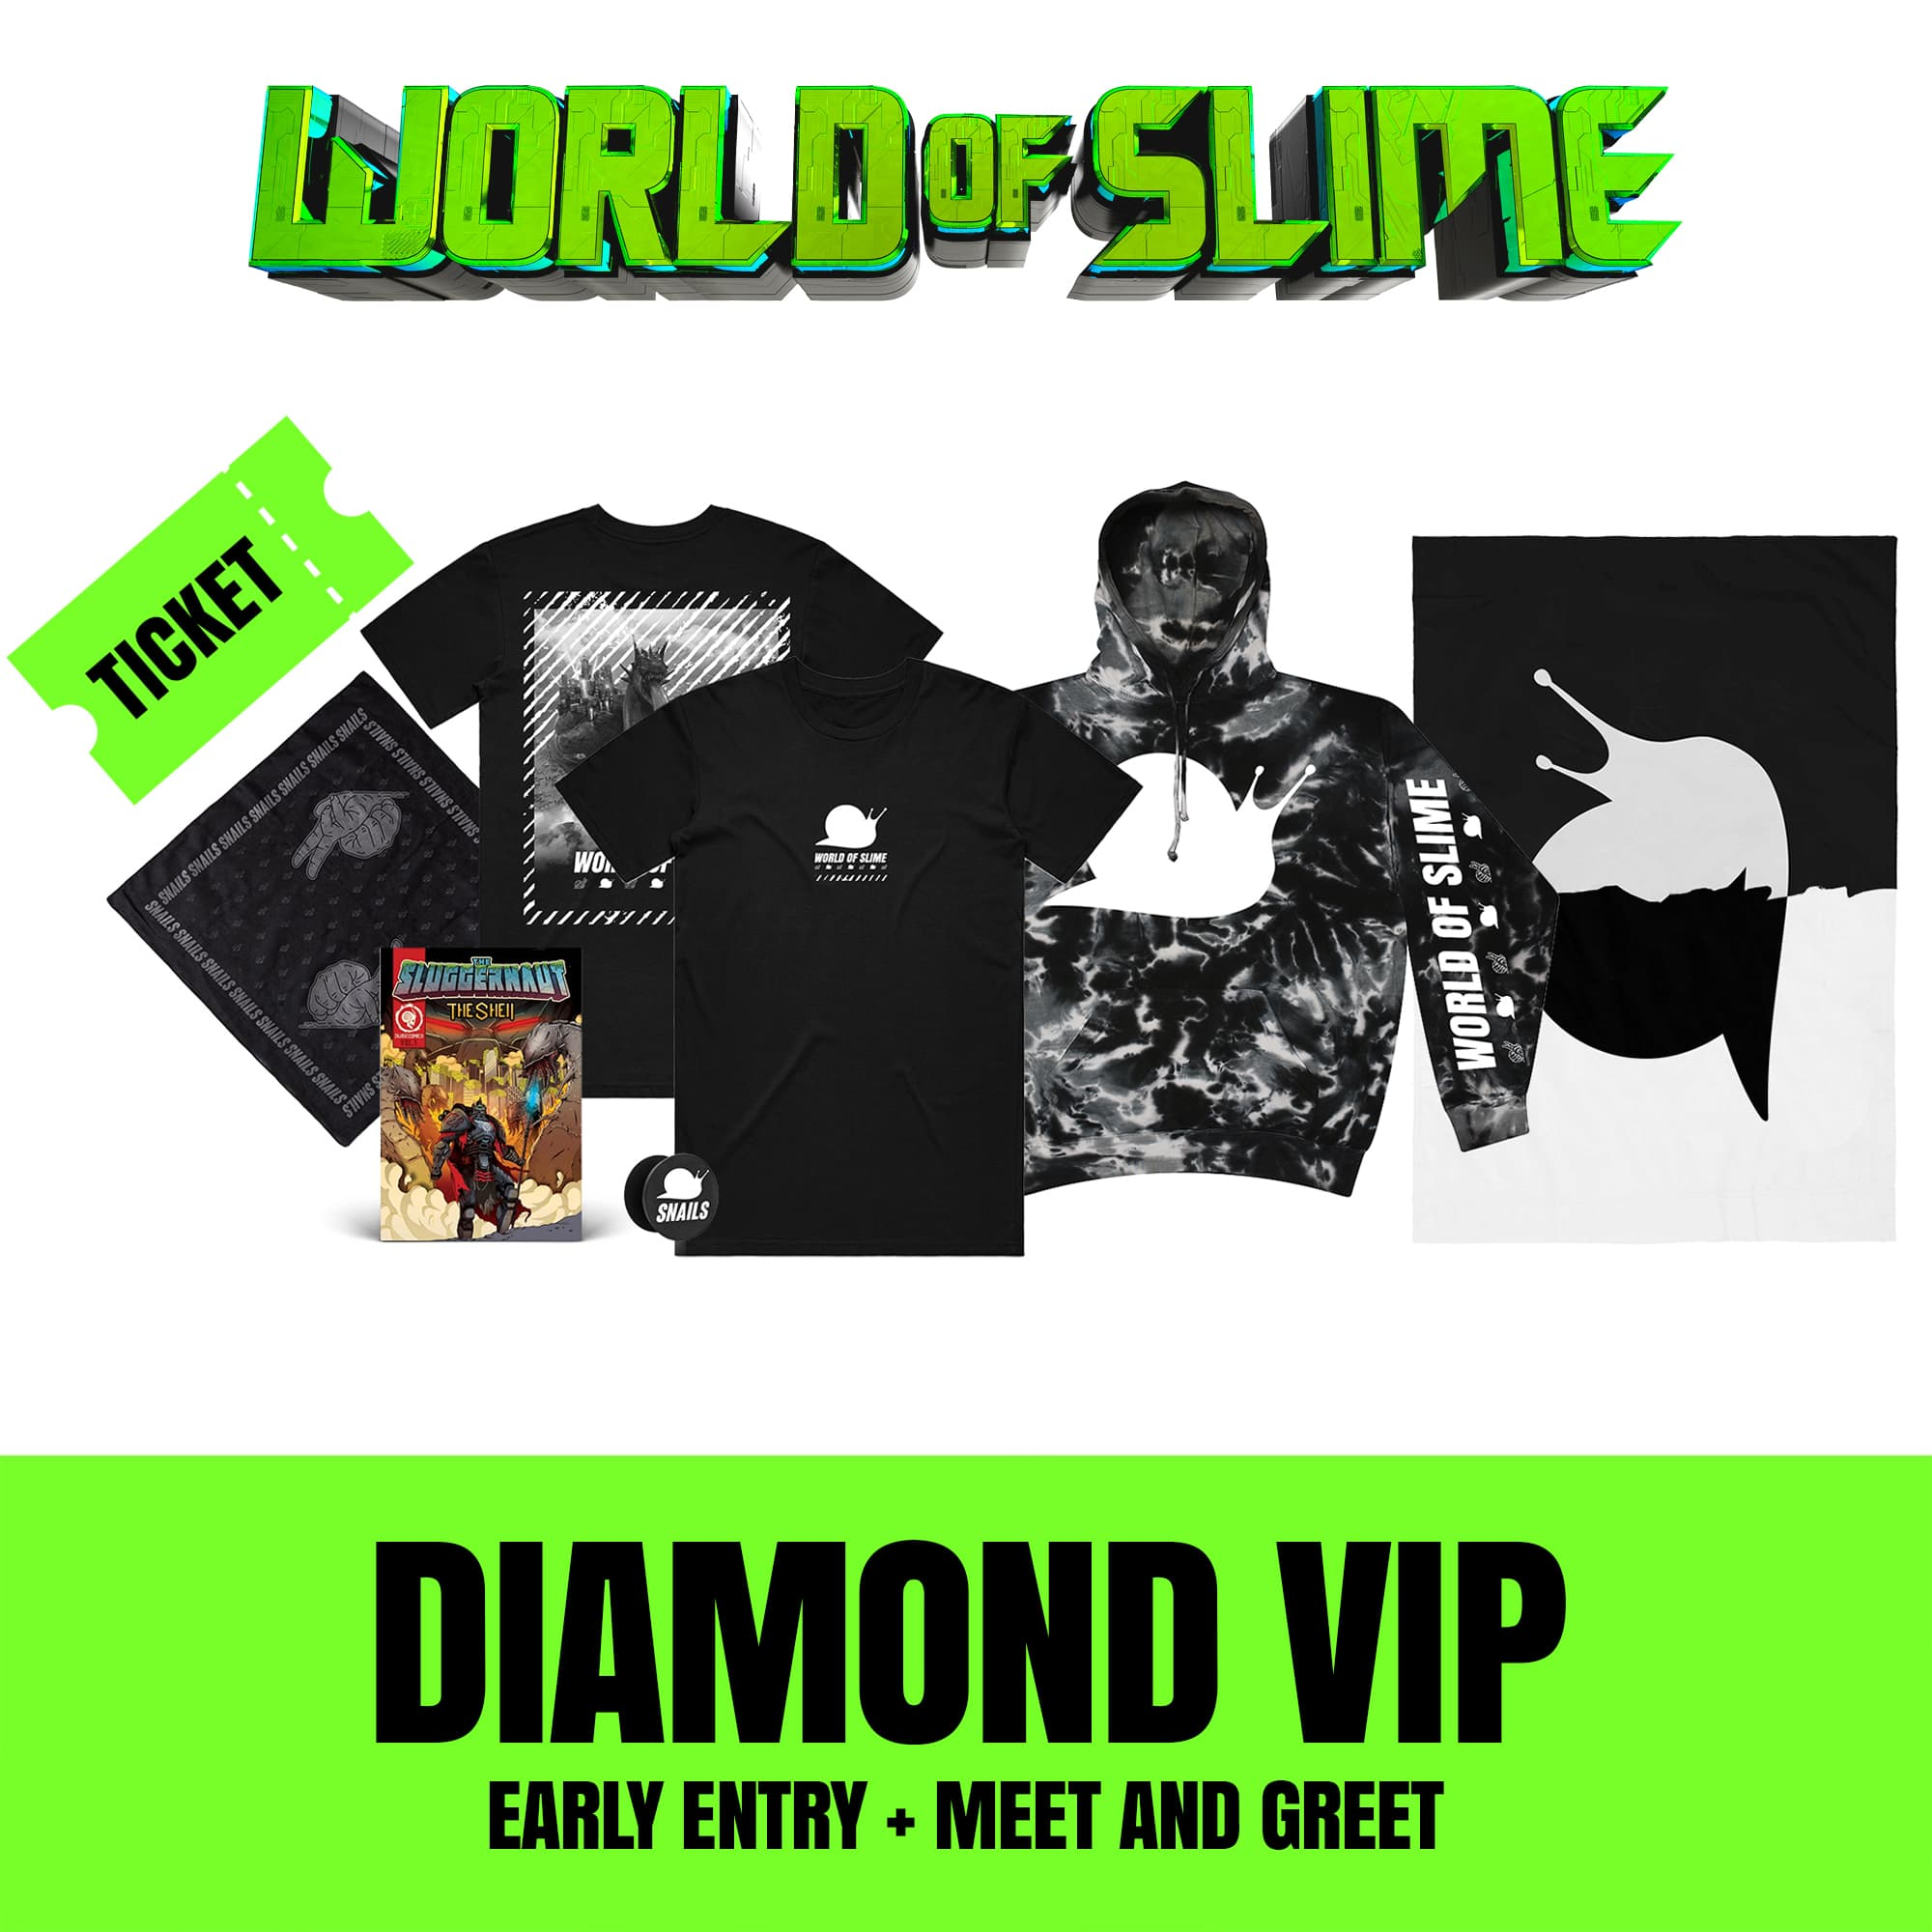 World Of Slime Tour - Boston, MA - 12/10